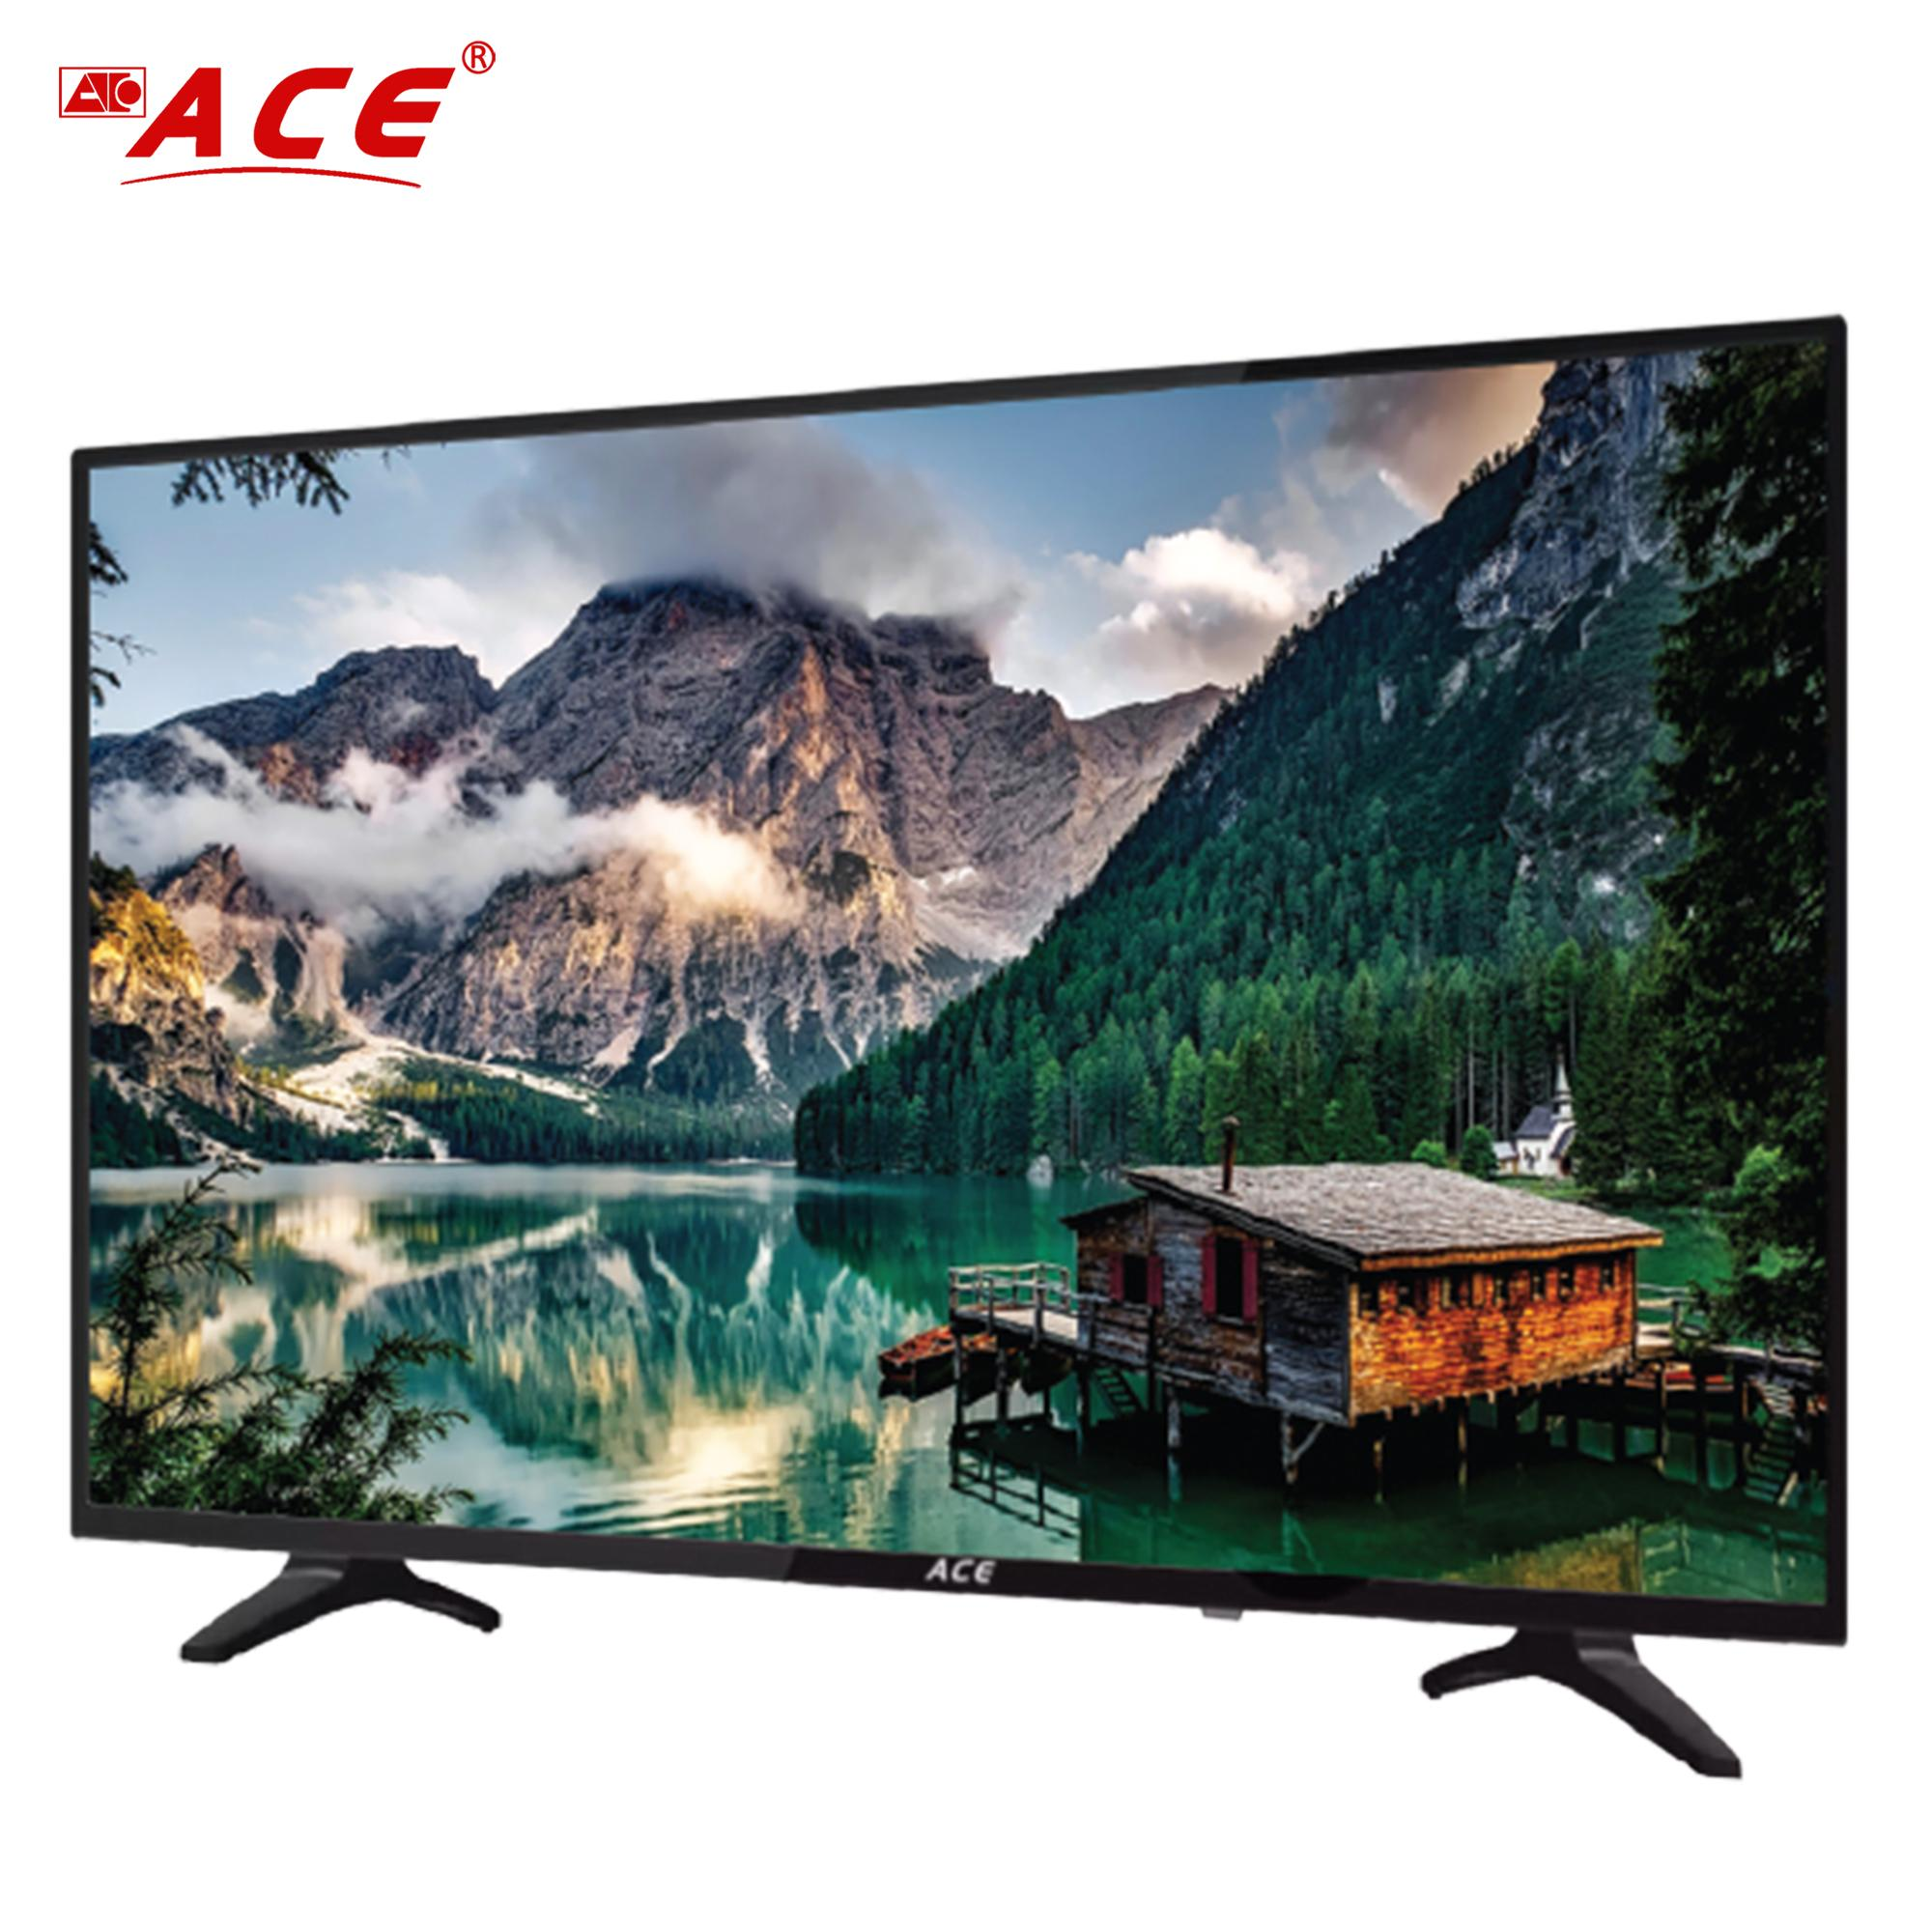 1b313ee313a7de Smart TV for sale - Smart Television prices, brands   specs in ...